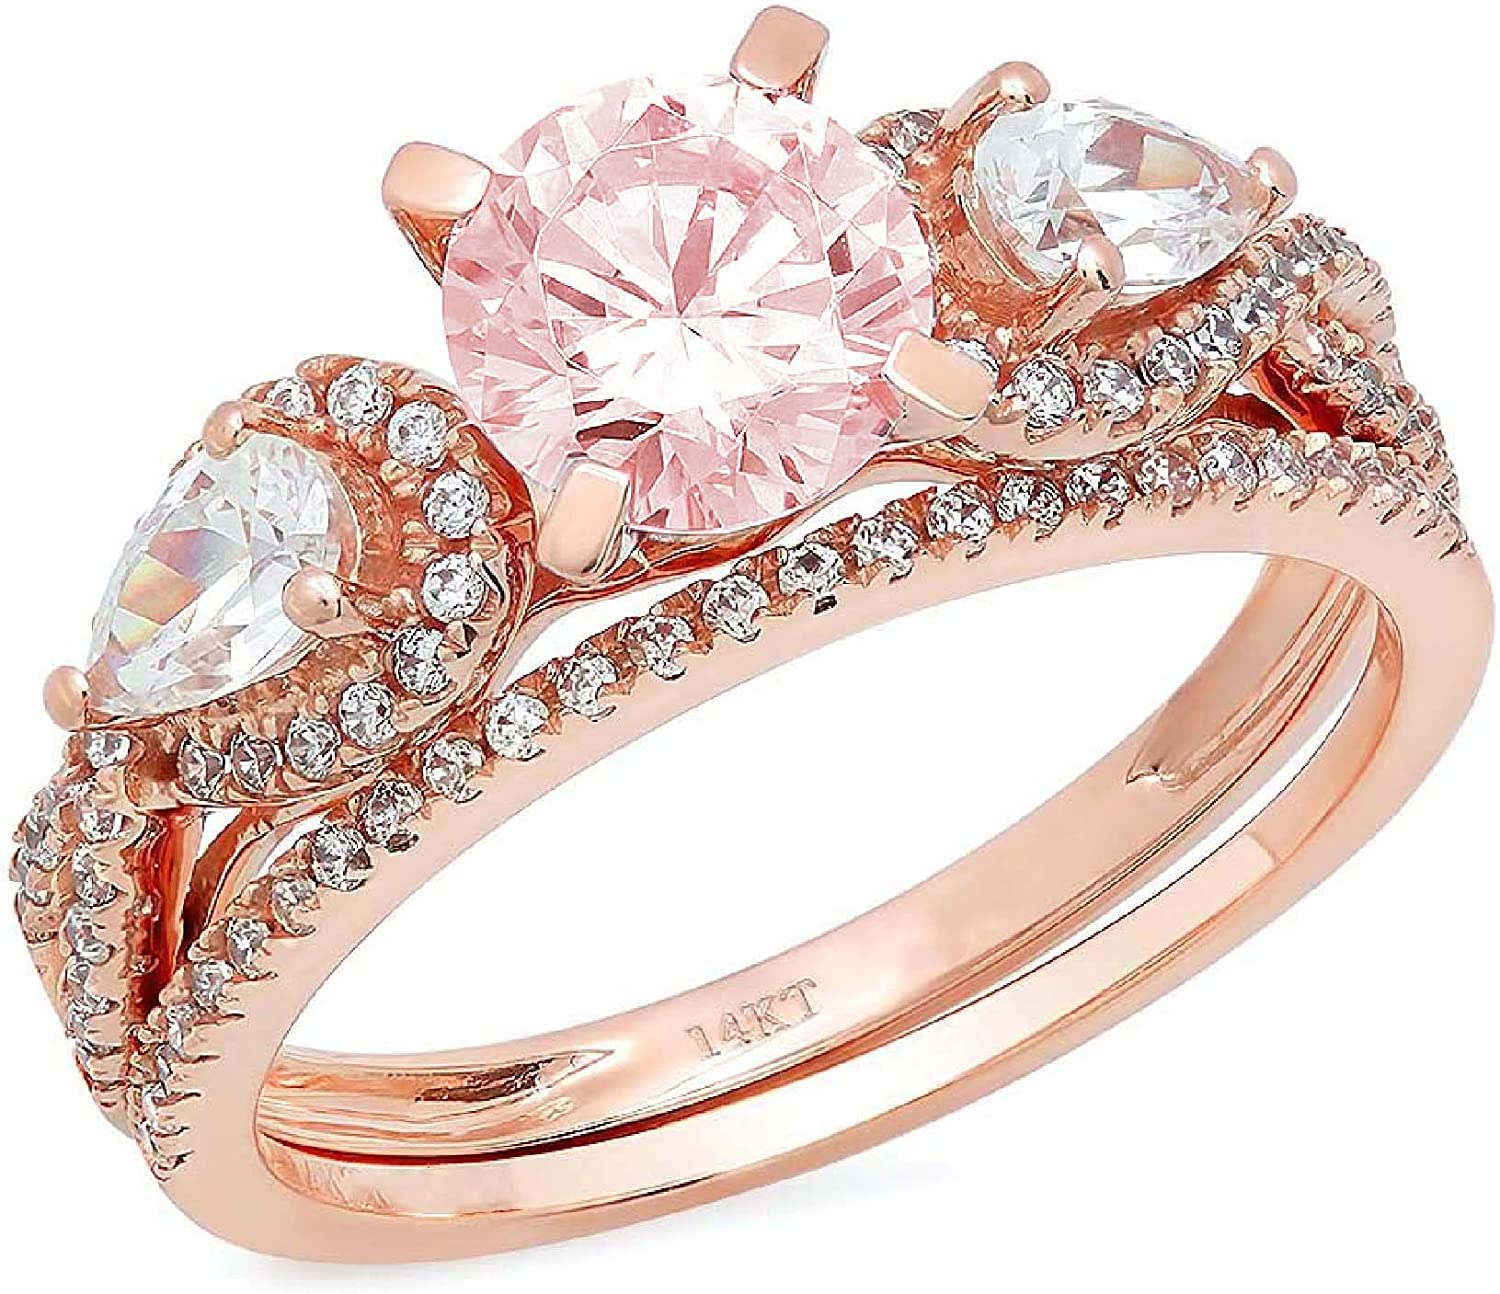 1.94ct Round Pear Cut Solitaire 3 stone With Accent VVS1 Ideal Pink Simulated Diamond CZ Engagement Promise Designer Anniversary Wedding Bridal ring band set 14k Rose Gold